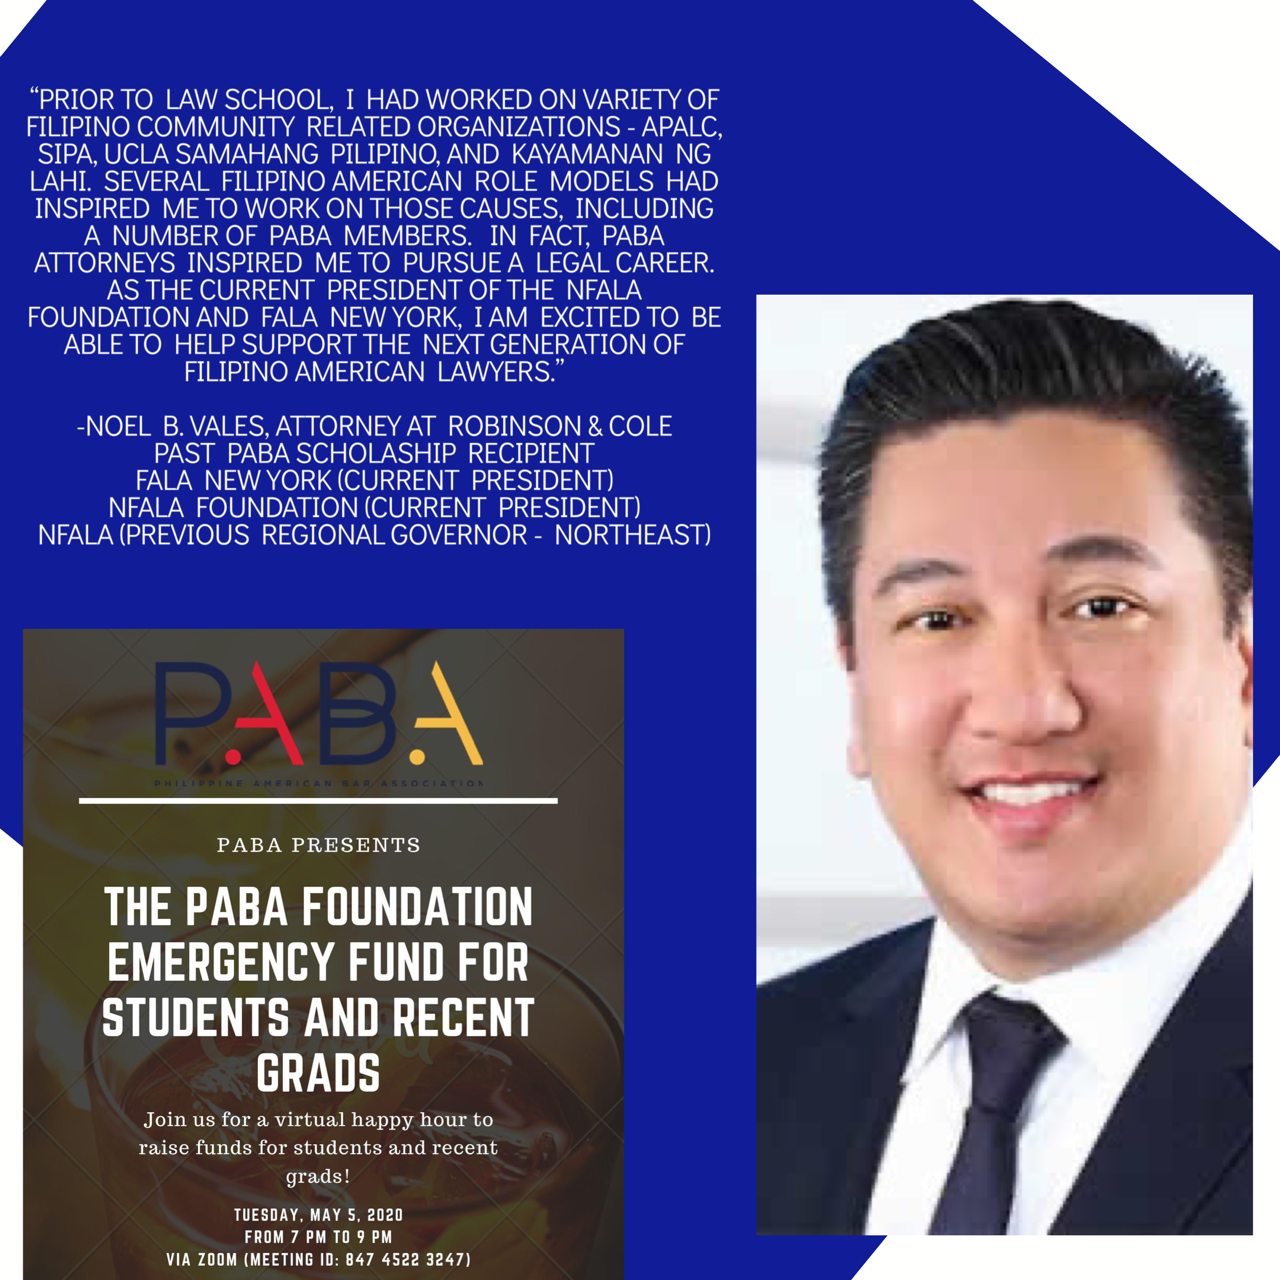 Past PABA Scholarship Recipient Spotlight: Noel B. Vales